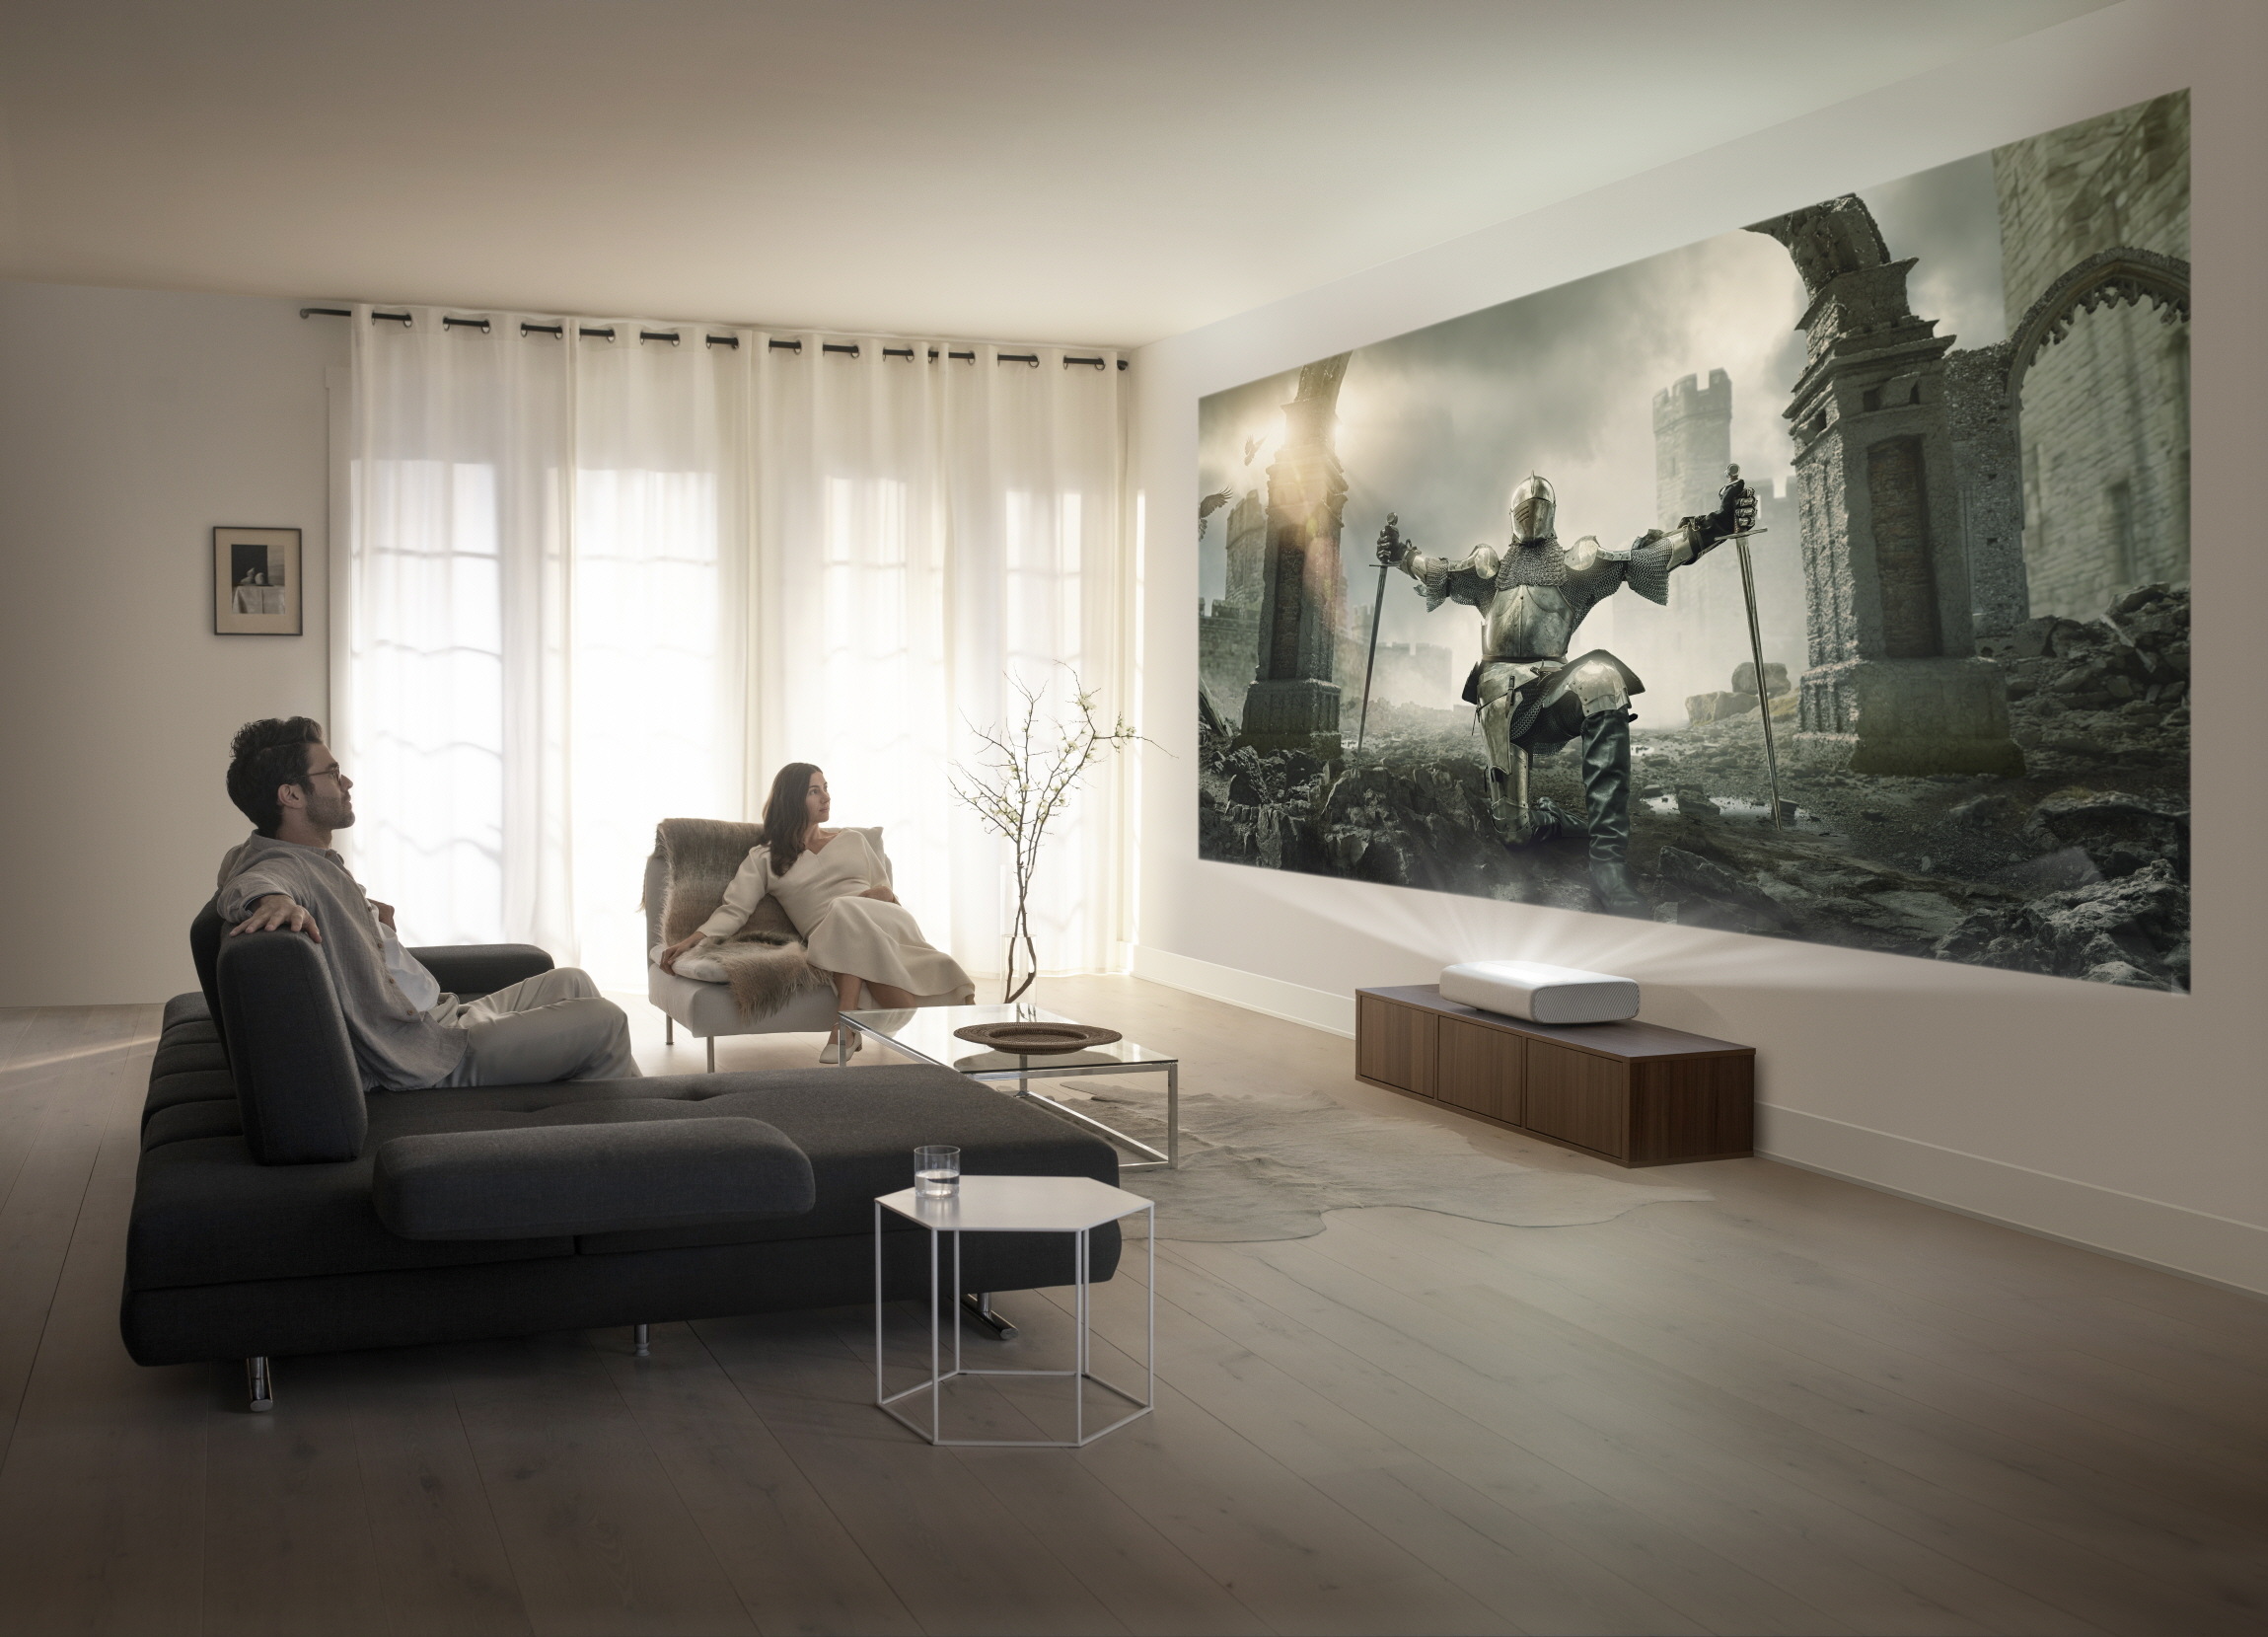 Samsung Announces 4K Ultra Short Throw Laser Projector: The Premiere